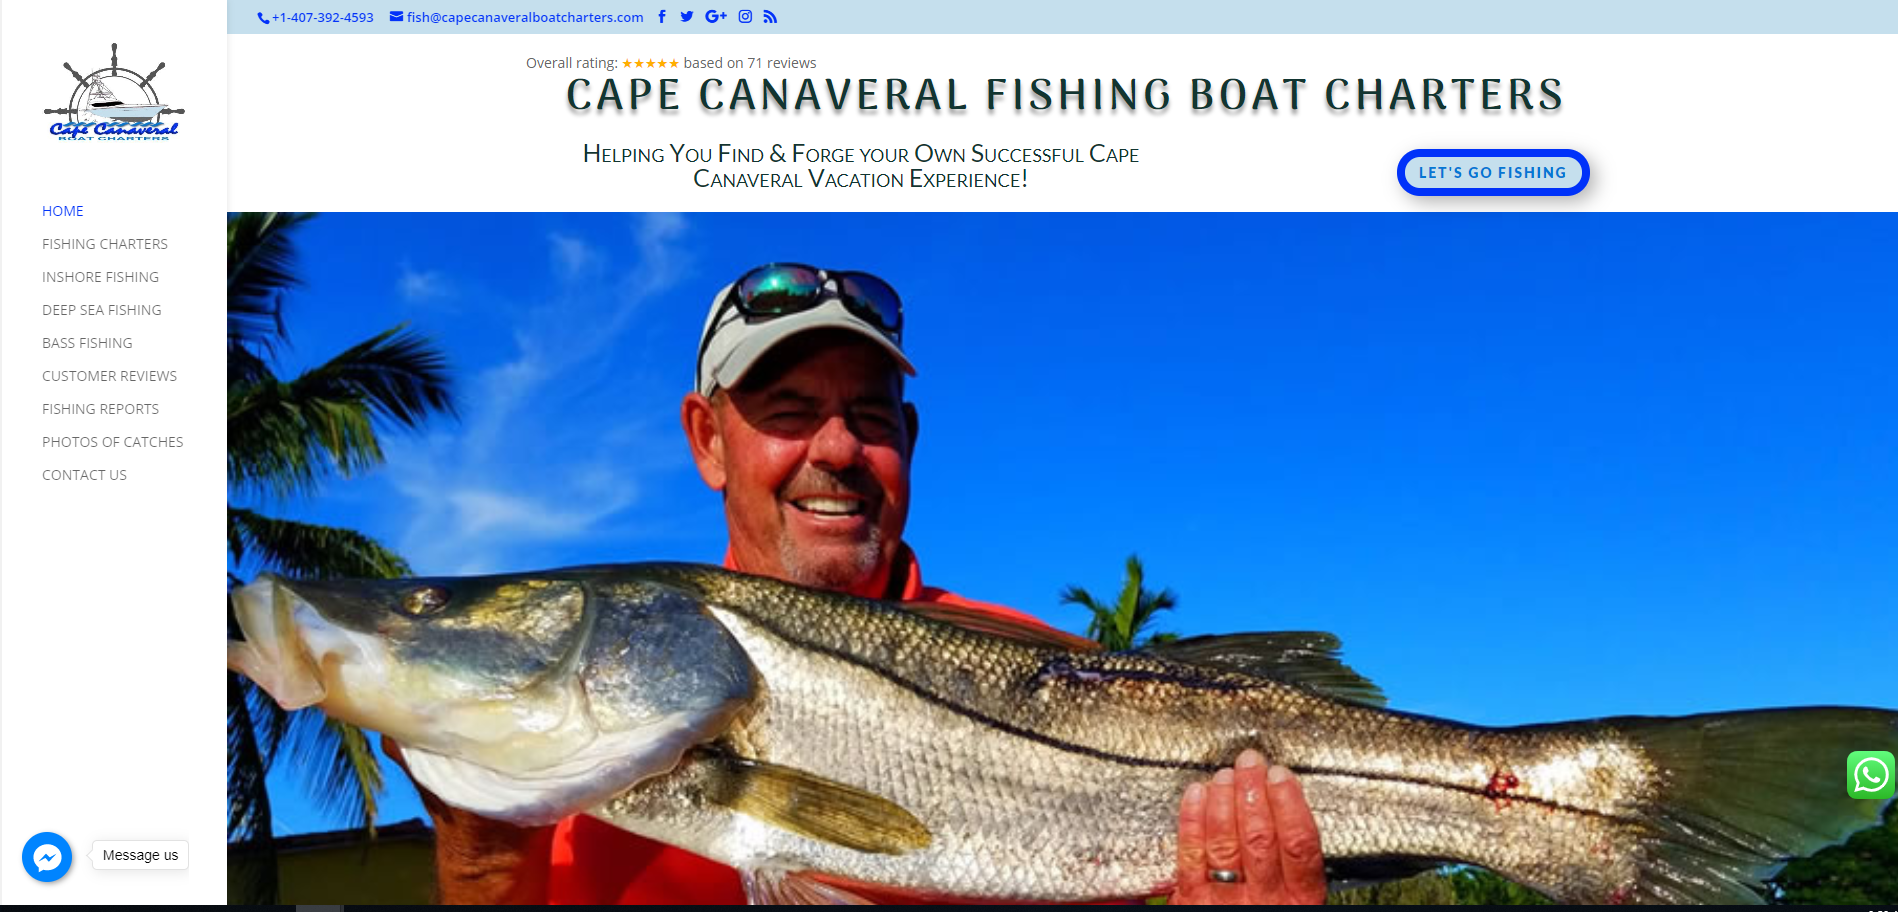 Cape Canaveral Boat Charters